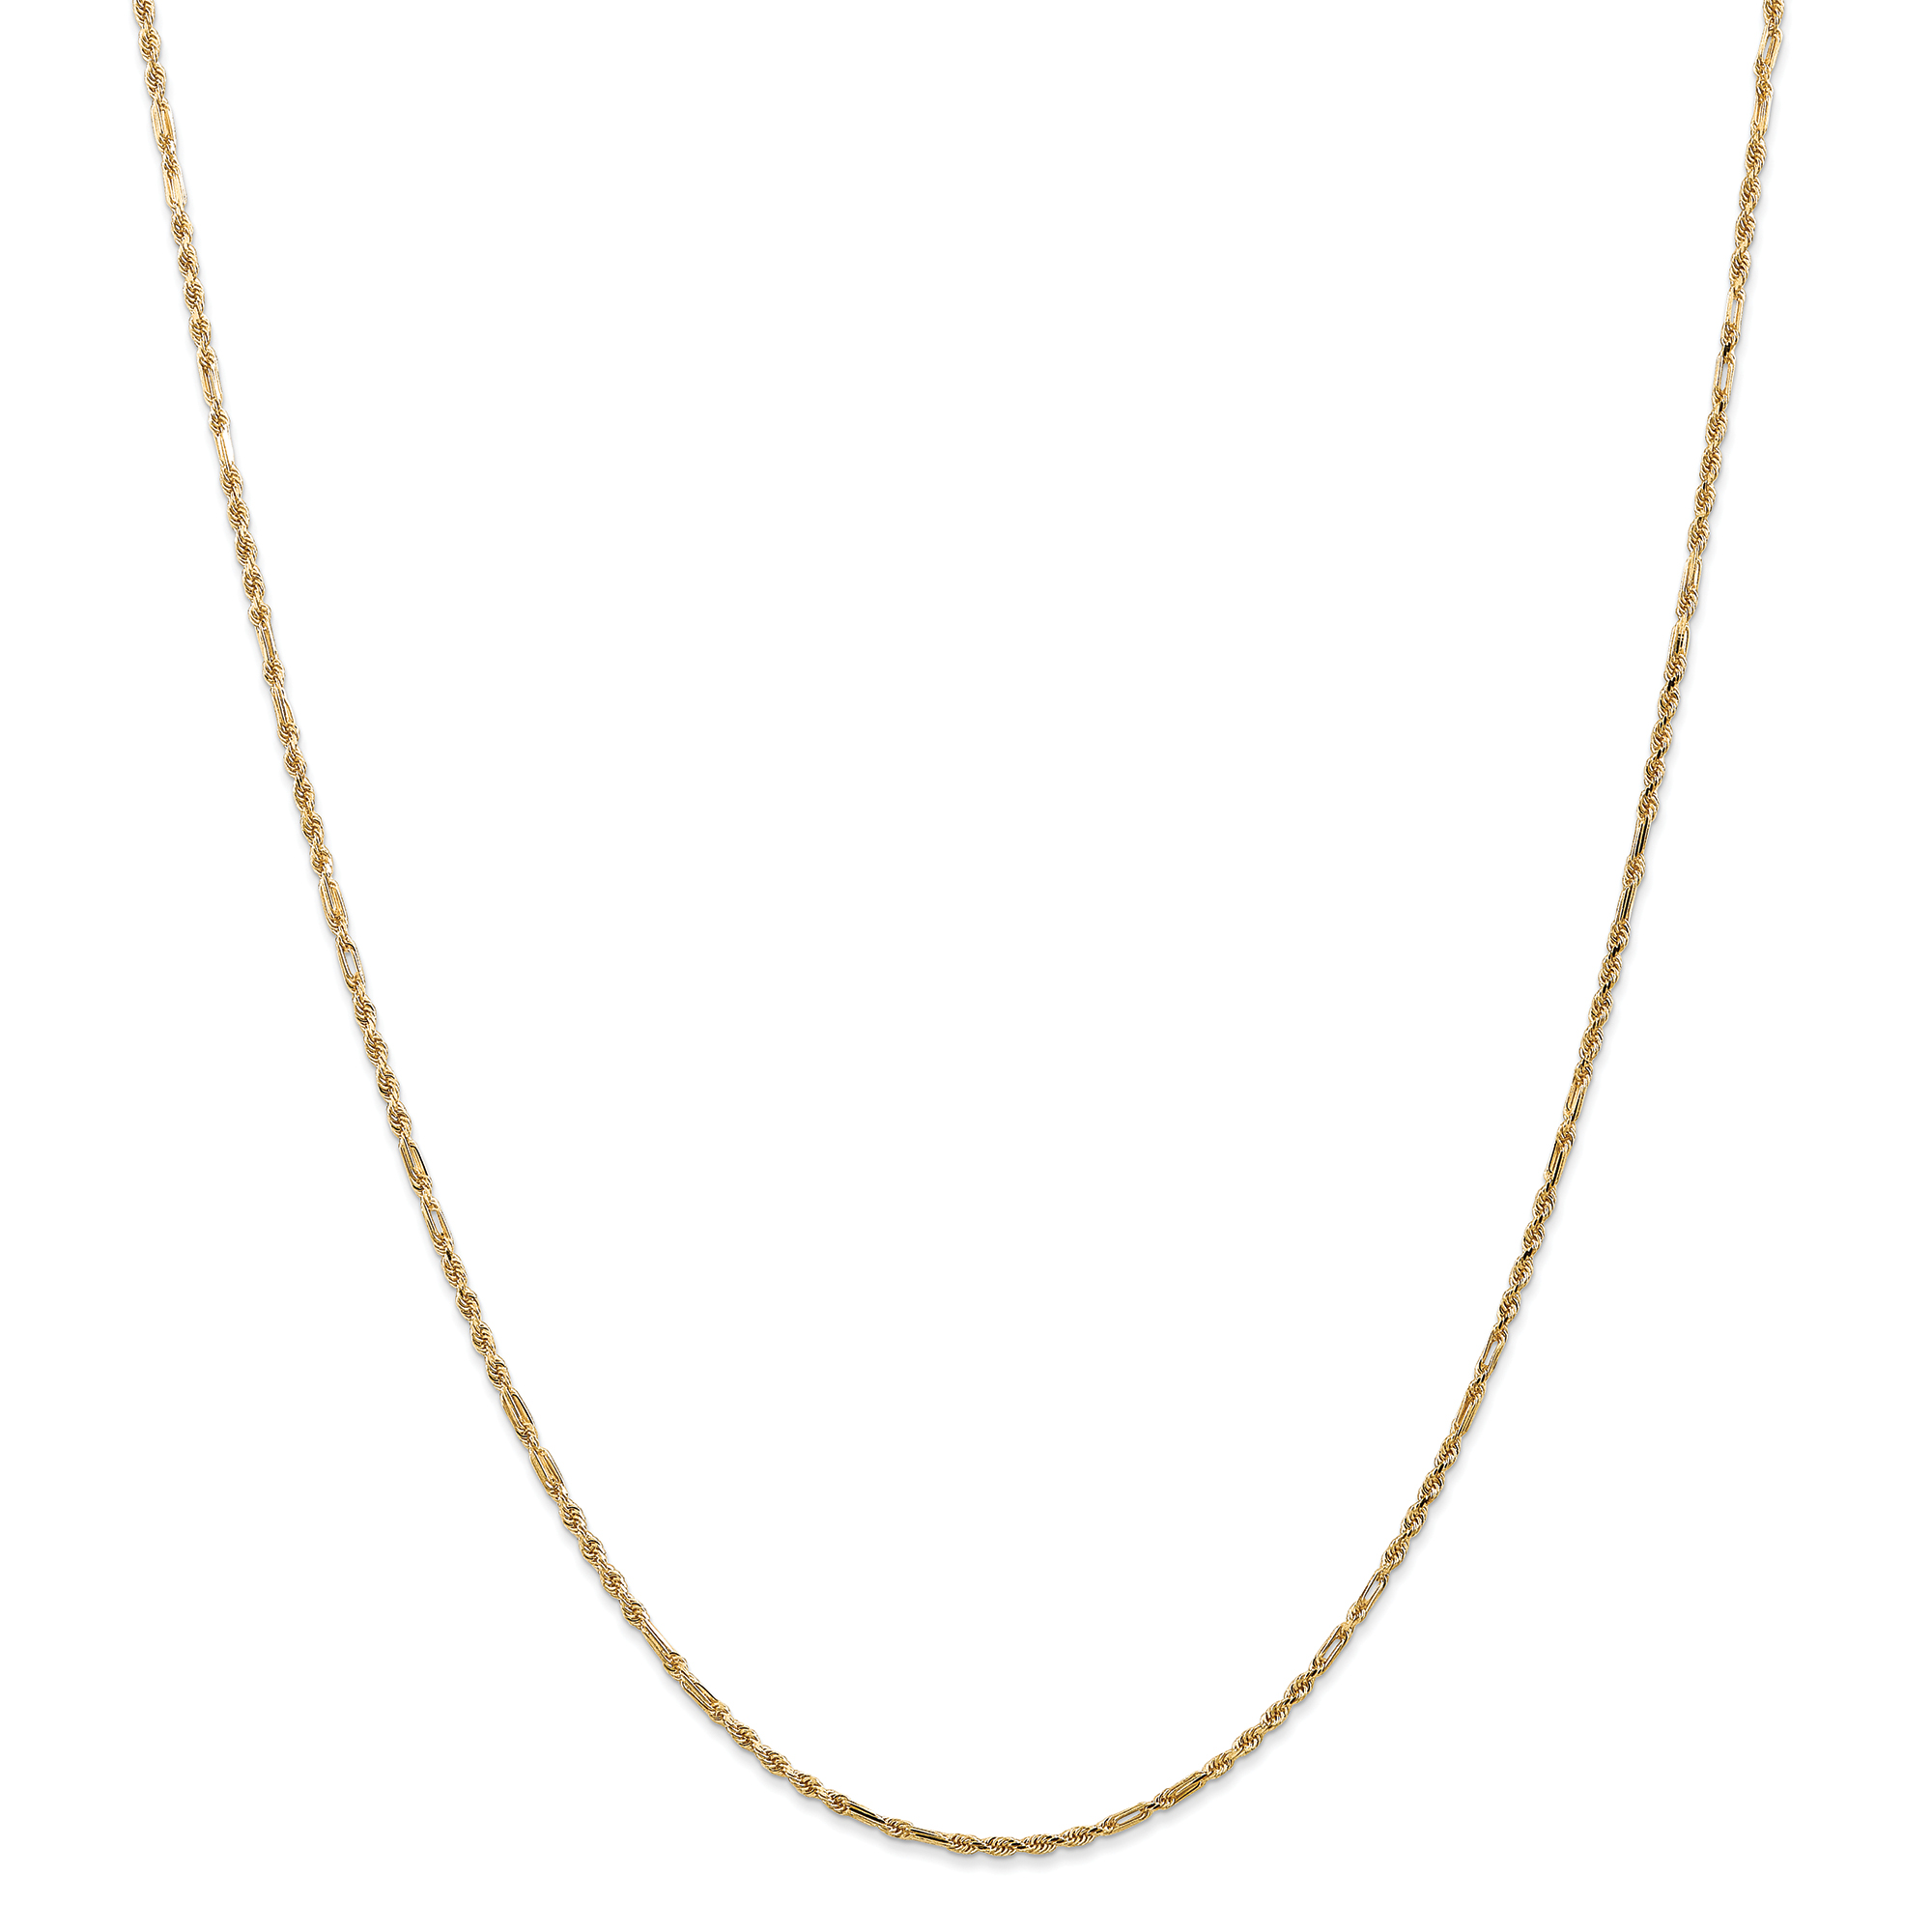 14k 1.25mm Milano Rope Chain. Weight: 3.48,  Length: 18